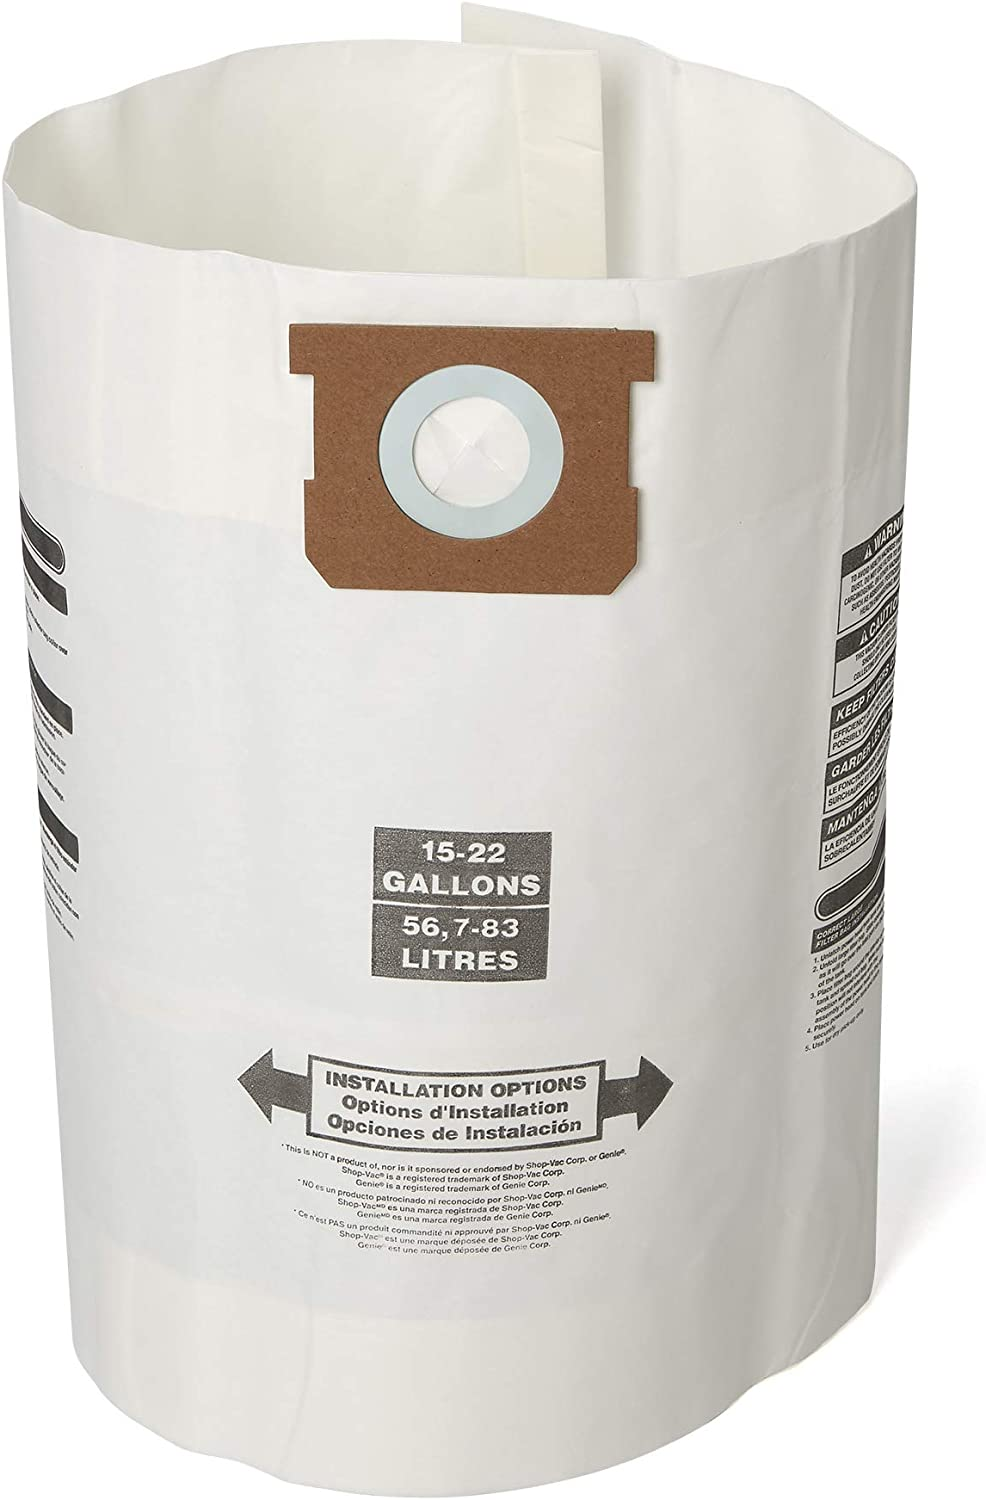 SEARS CRAFTSMAN 97274 Pack of 2 Two 12 Gallon Vacs High Efficiency Filter Bags